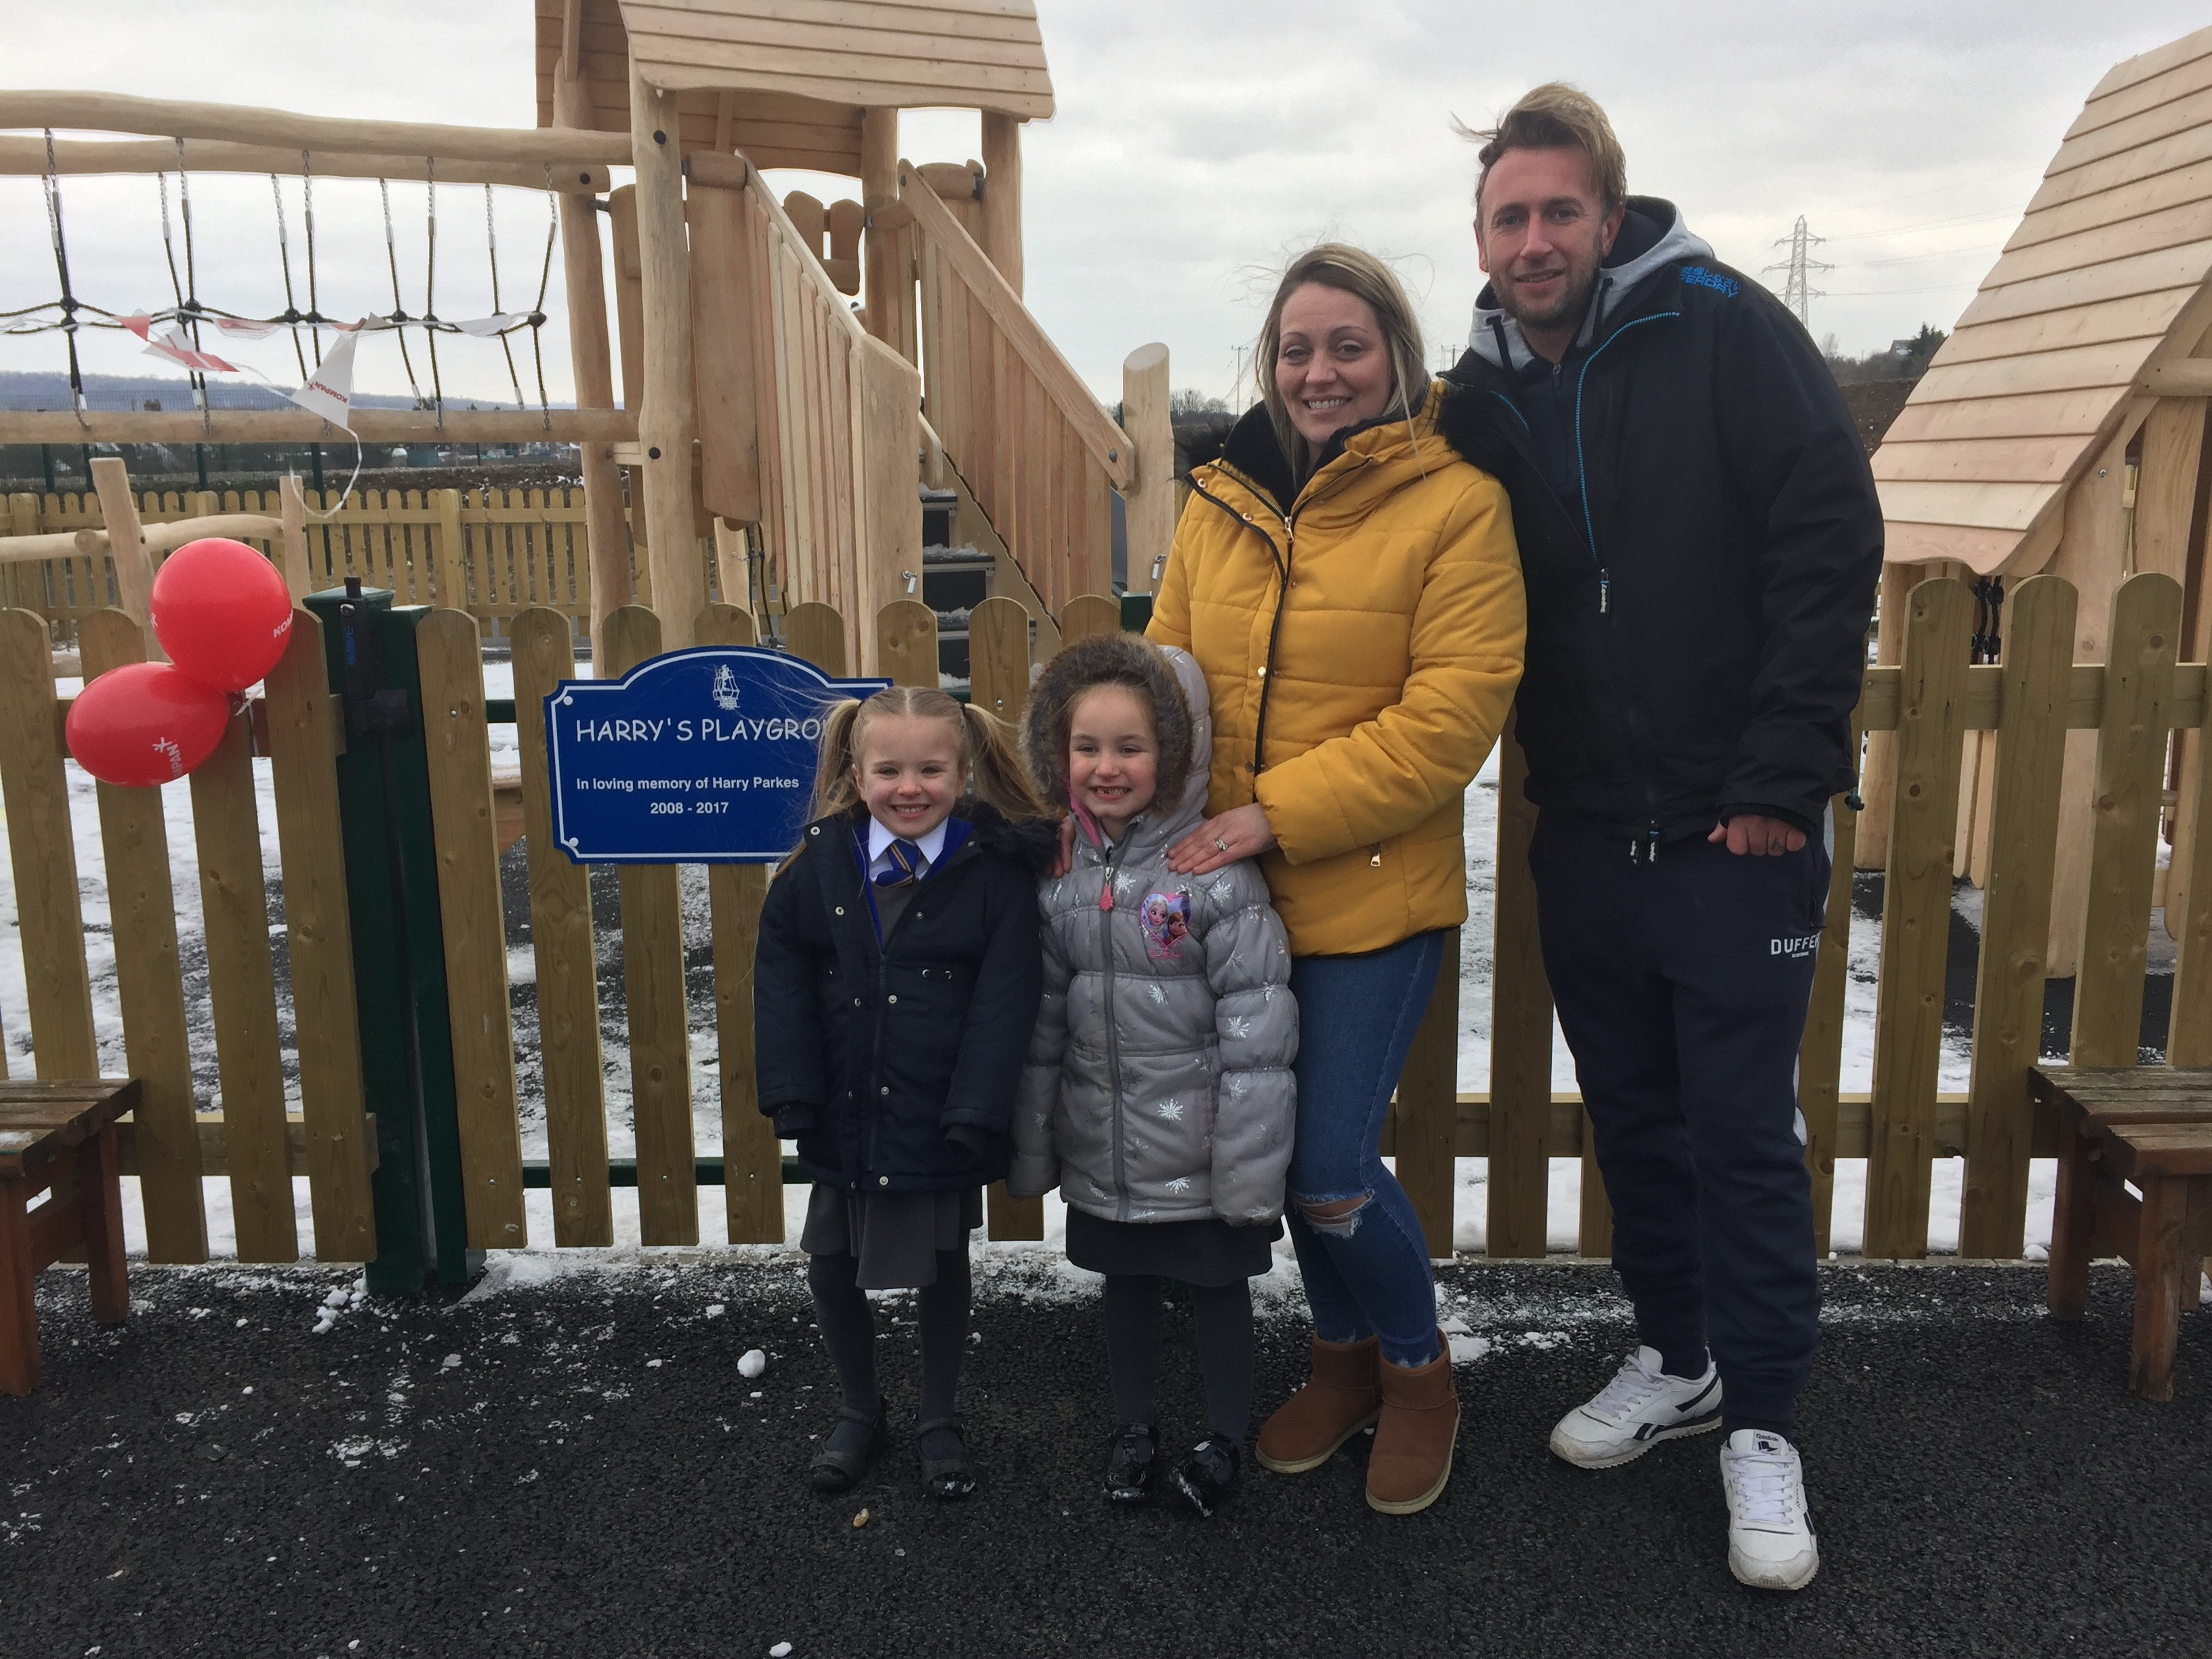 Playground dedicated to former pupil as new school buildings declared officially open